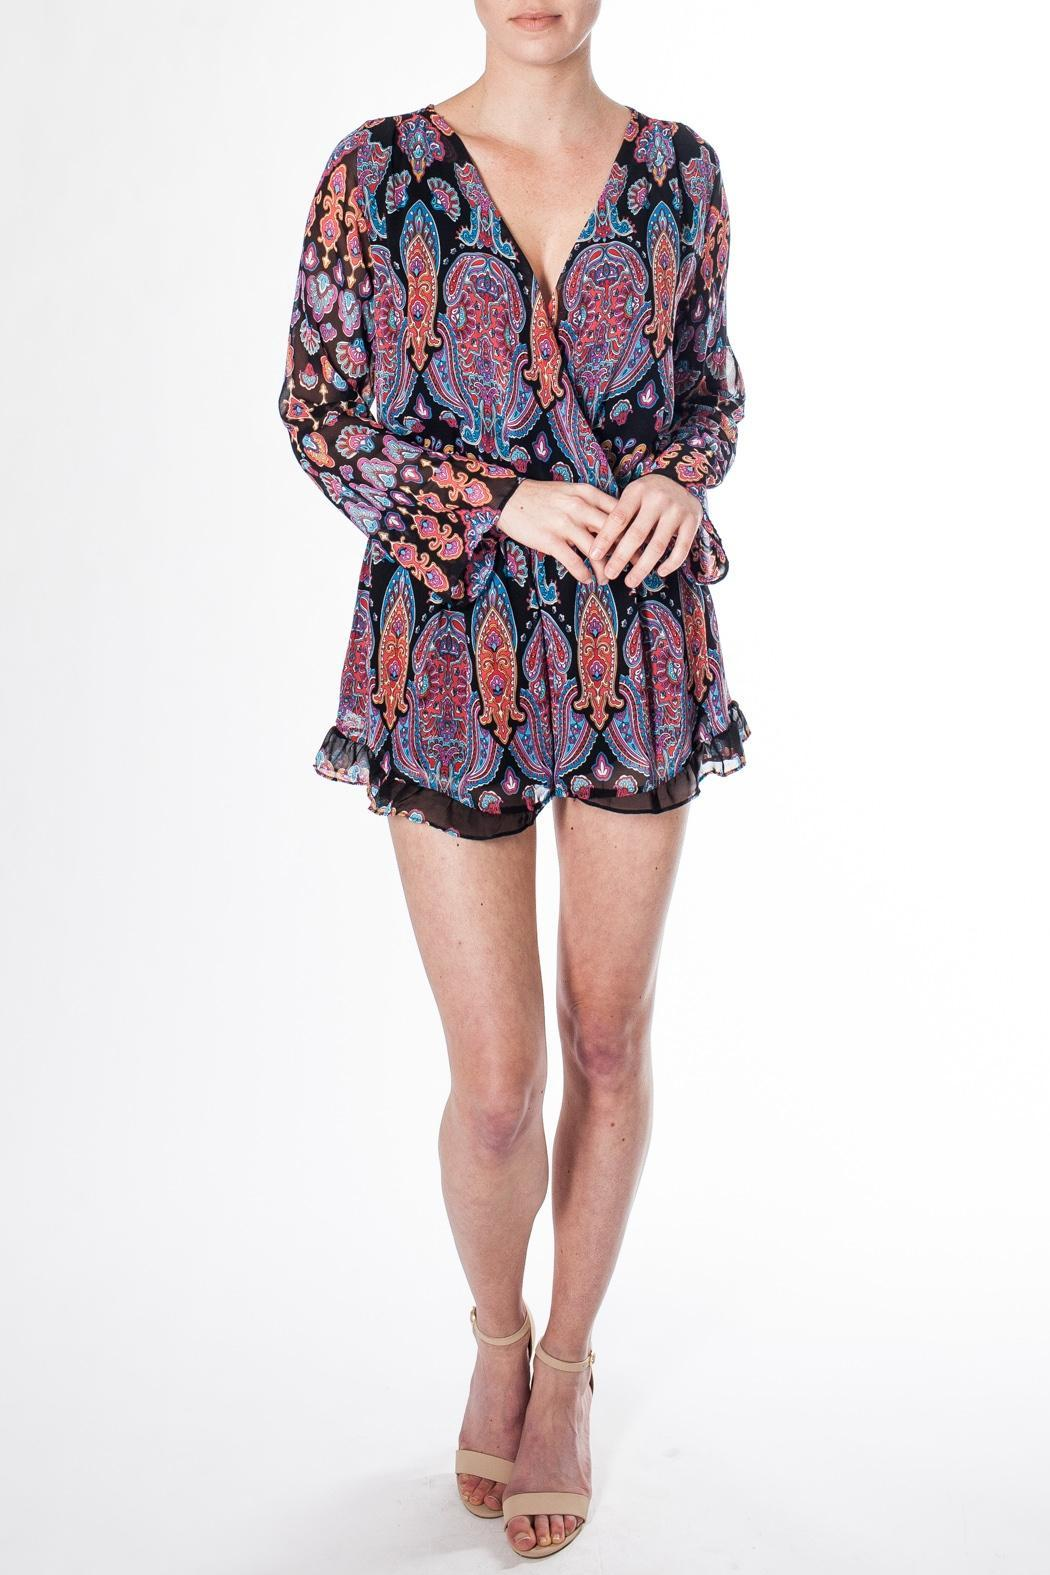 d01c9b6aeae honey belle Paisley Surplice Romper from Canada by Mad About Style ...